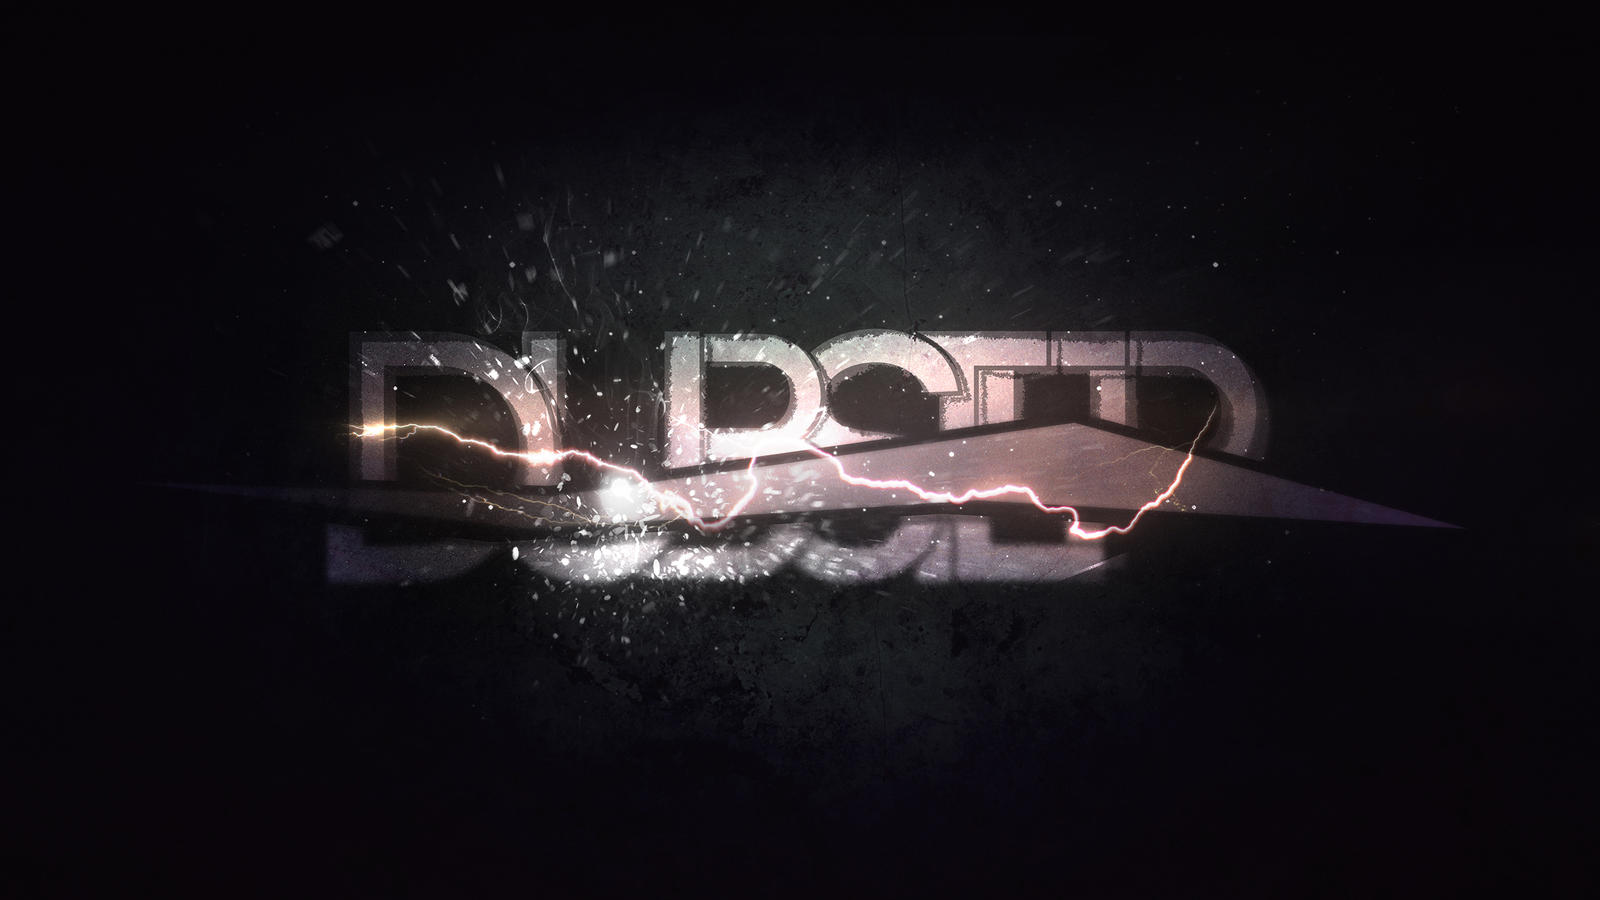 Dubstep Wallpaper by DronArtThemes